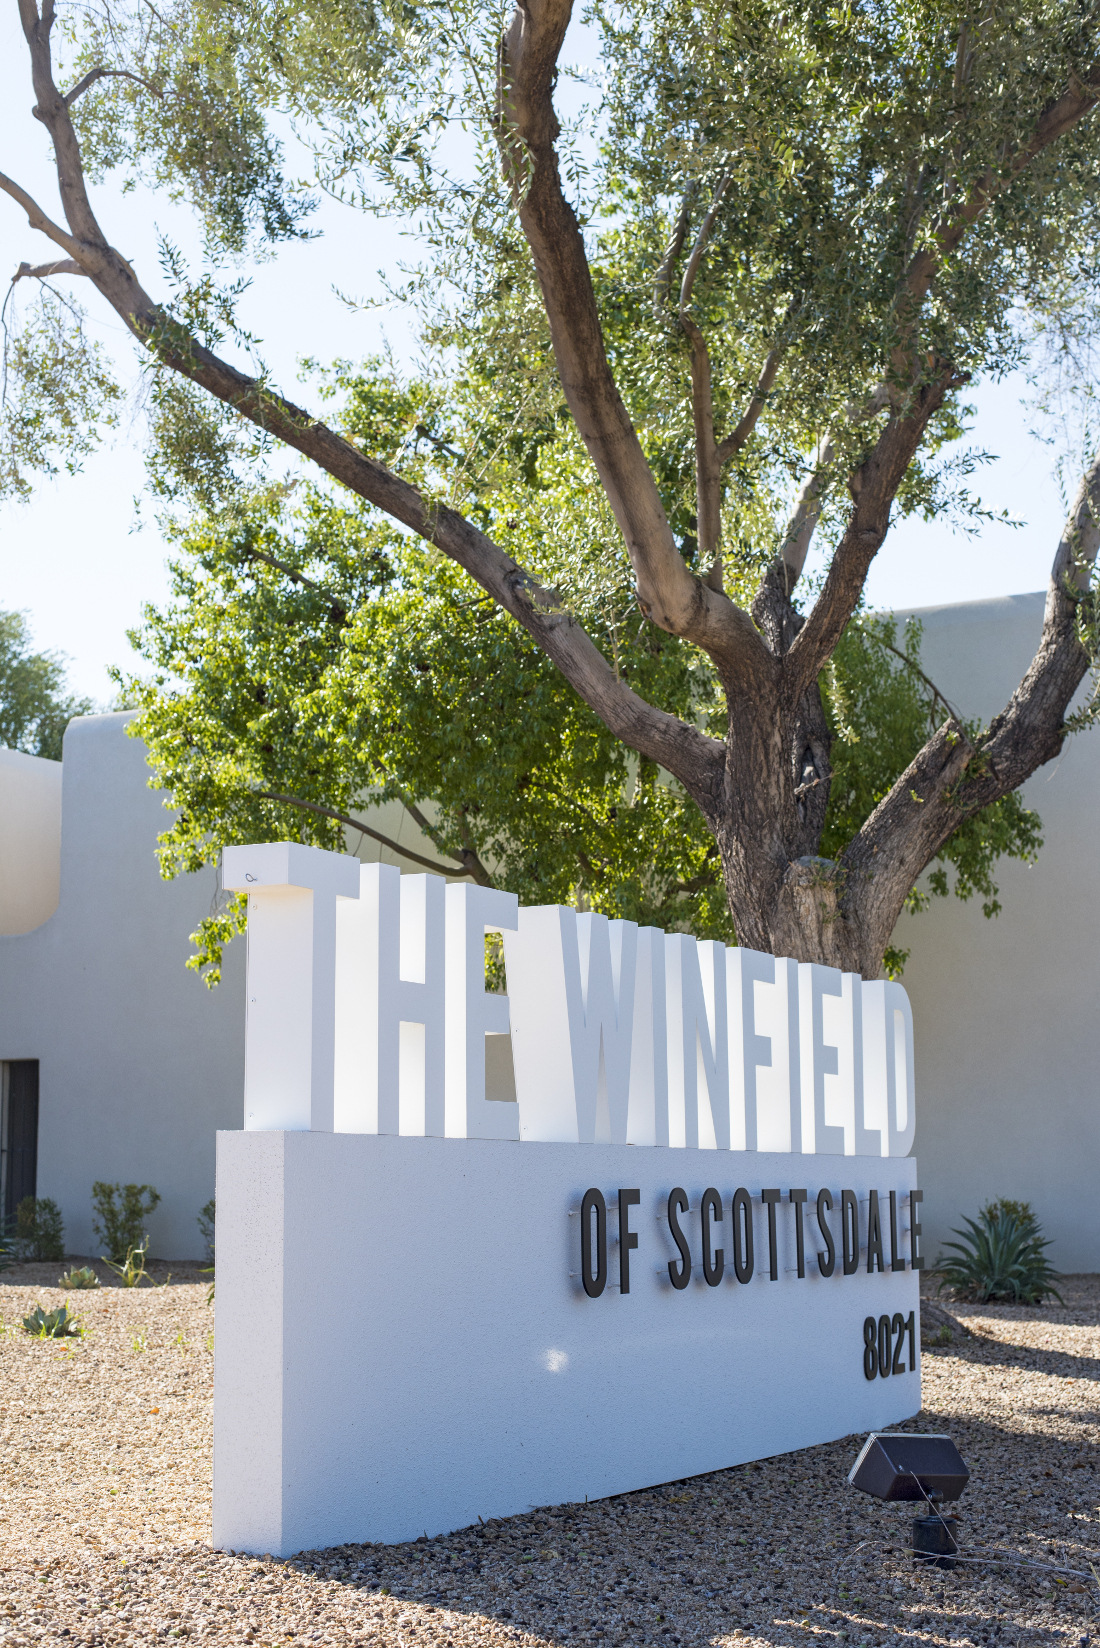 The Winfield of Scottsdale